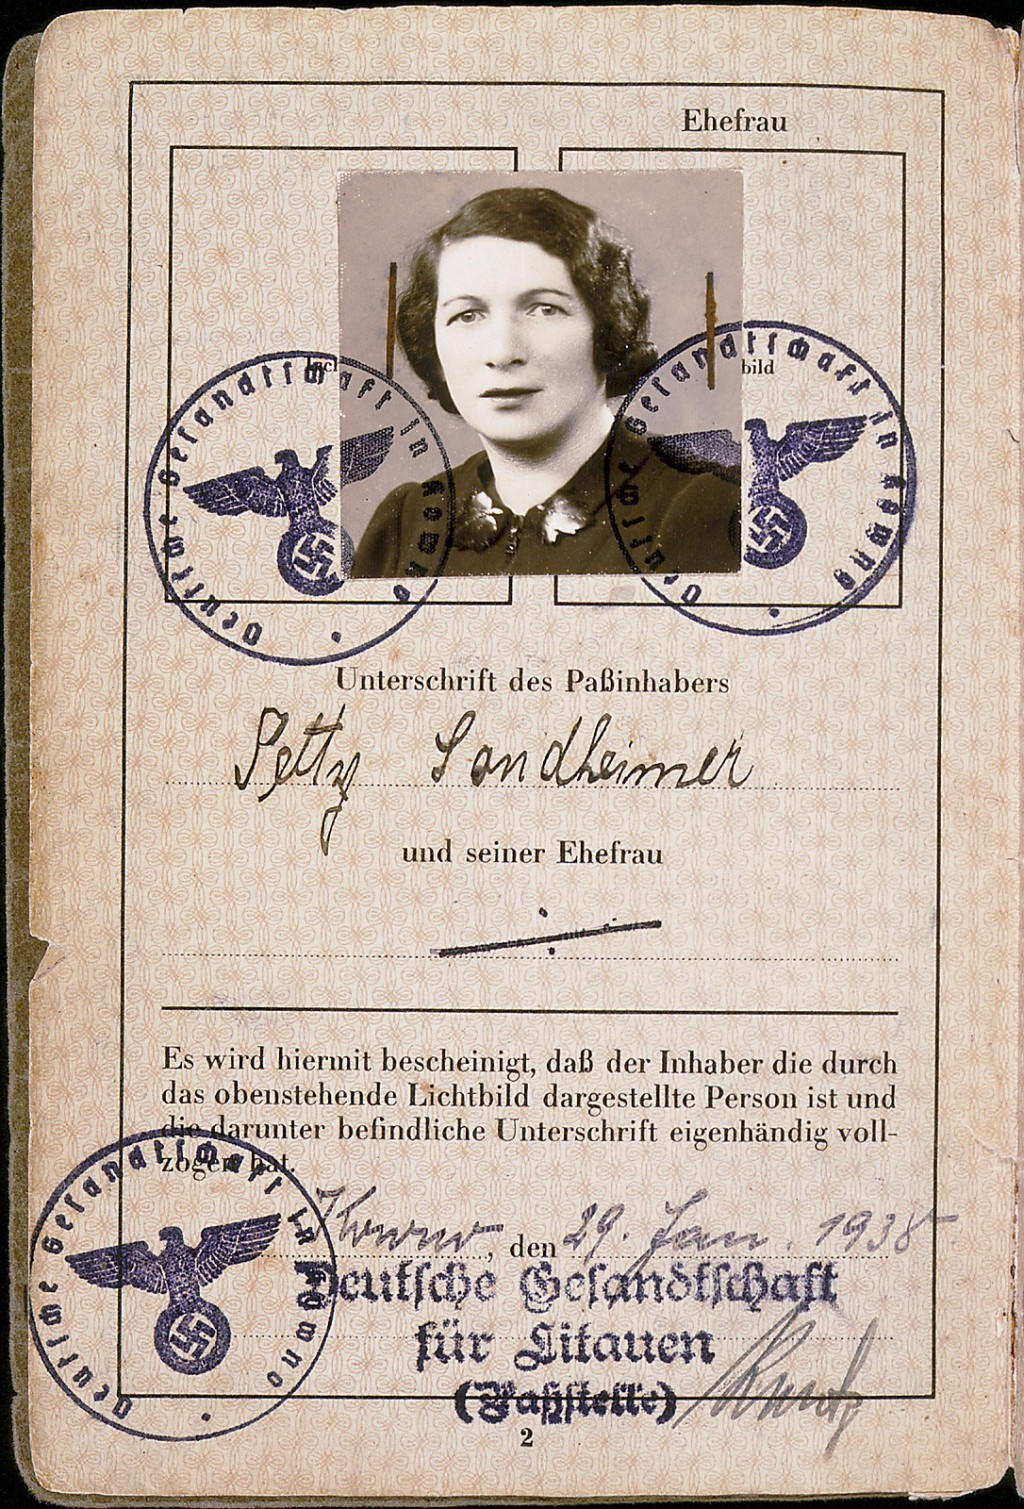 Page 2 of passport issued to Setty Sondheimer [LCID: 2000dc02]